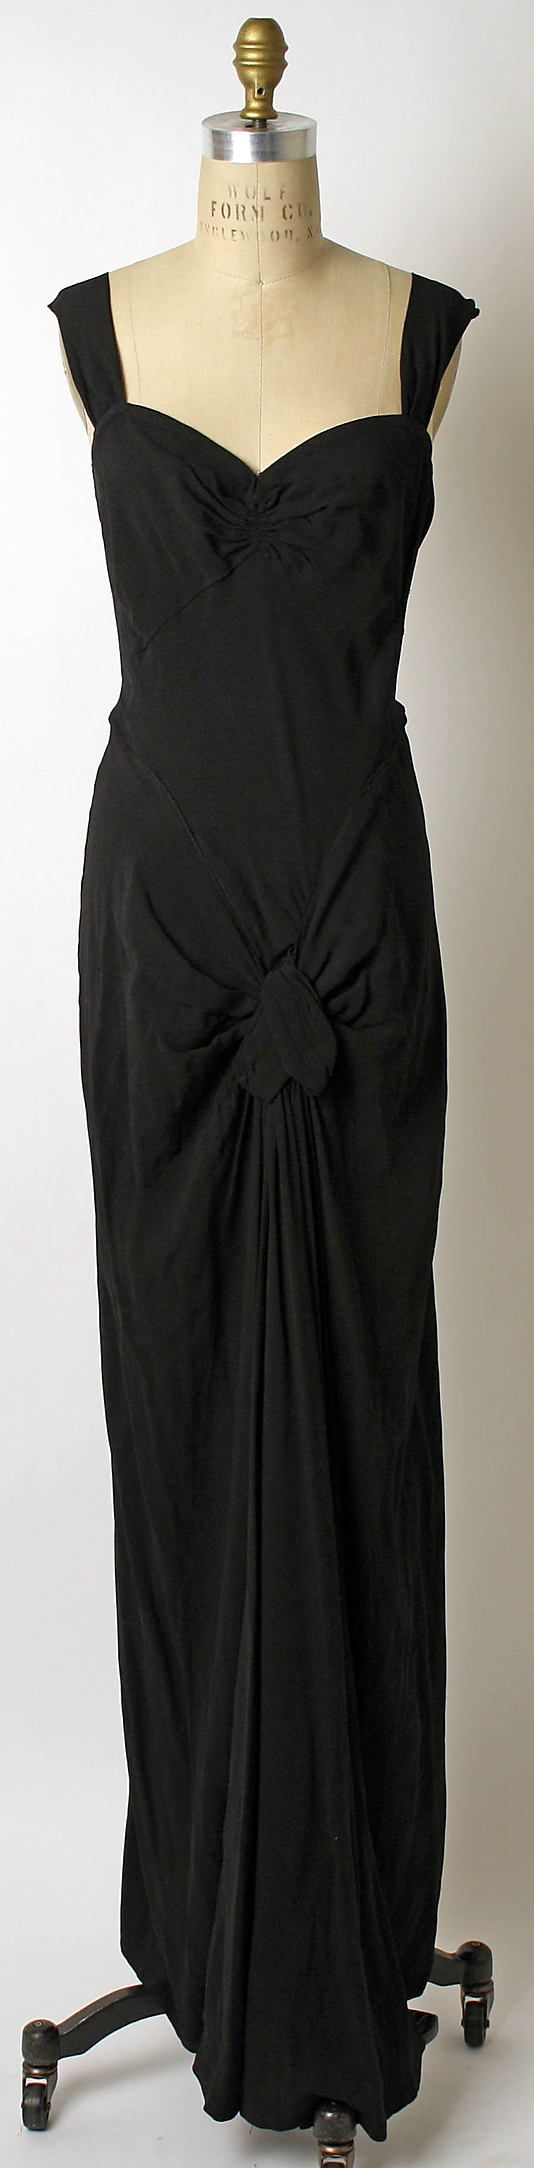 soo perfect it hurts to look at  1933 House of Lanvin black gown.  TIMELESS